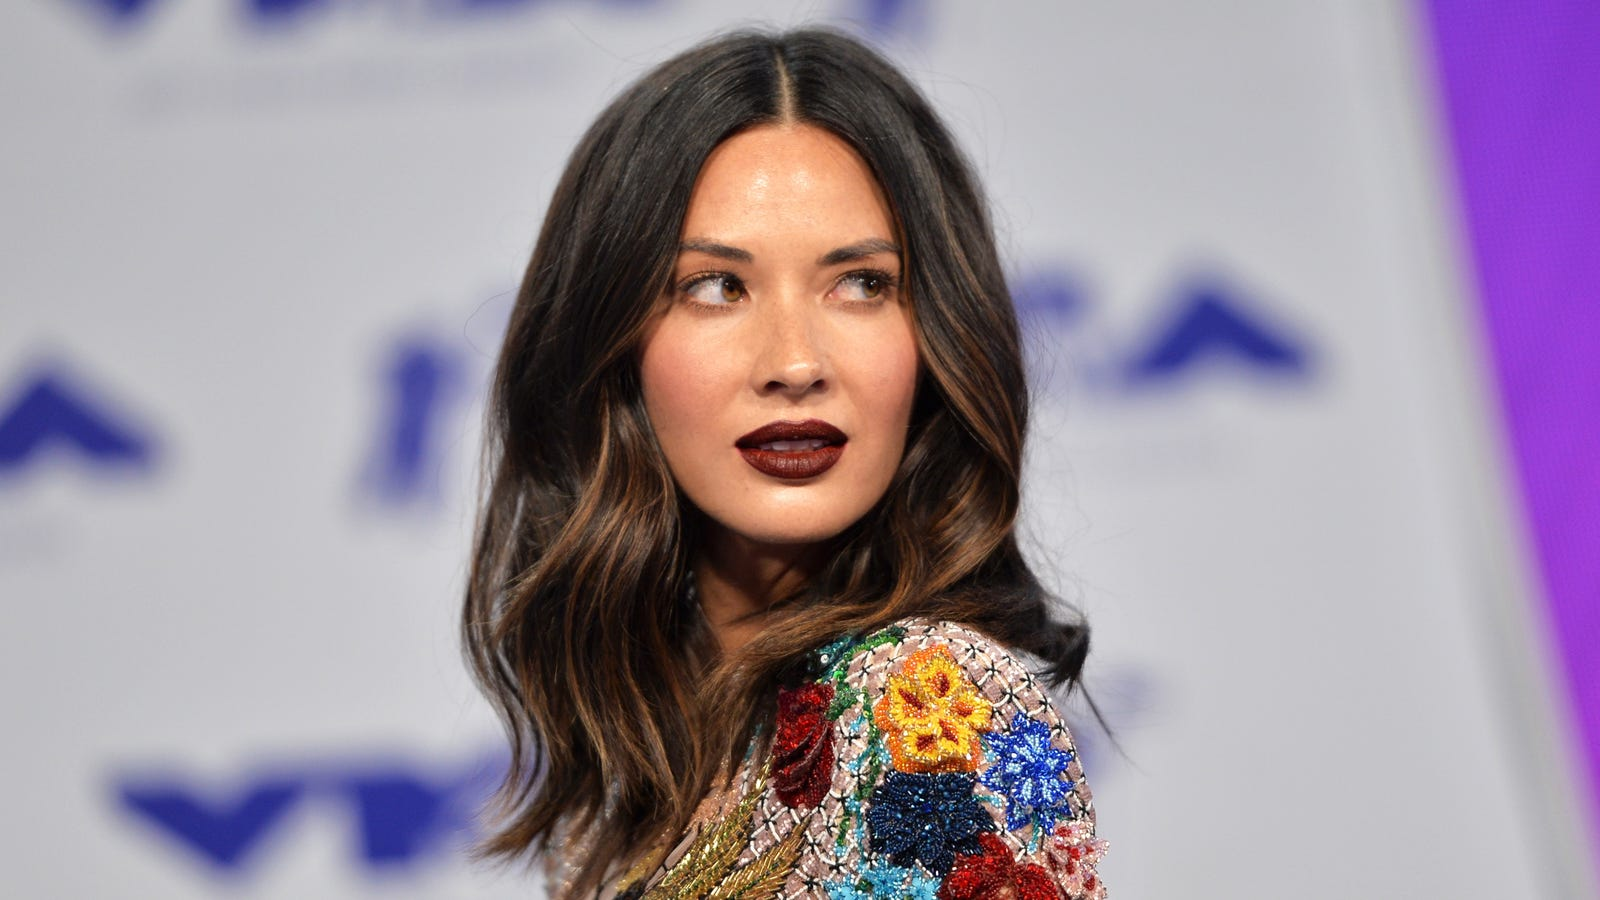 mun hair olivia munn had to pay for her own hair makeup and